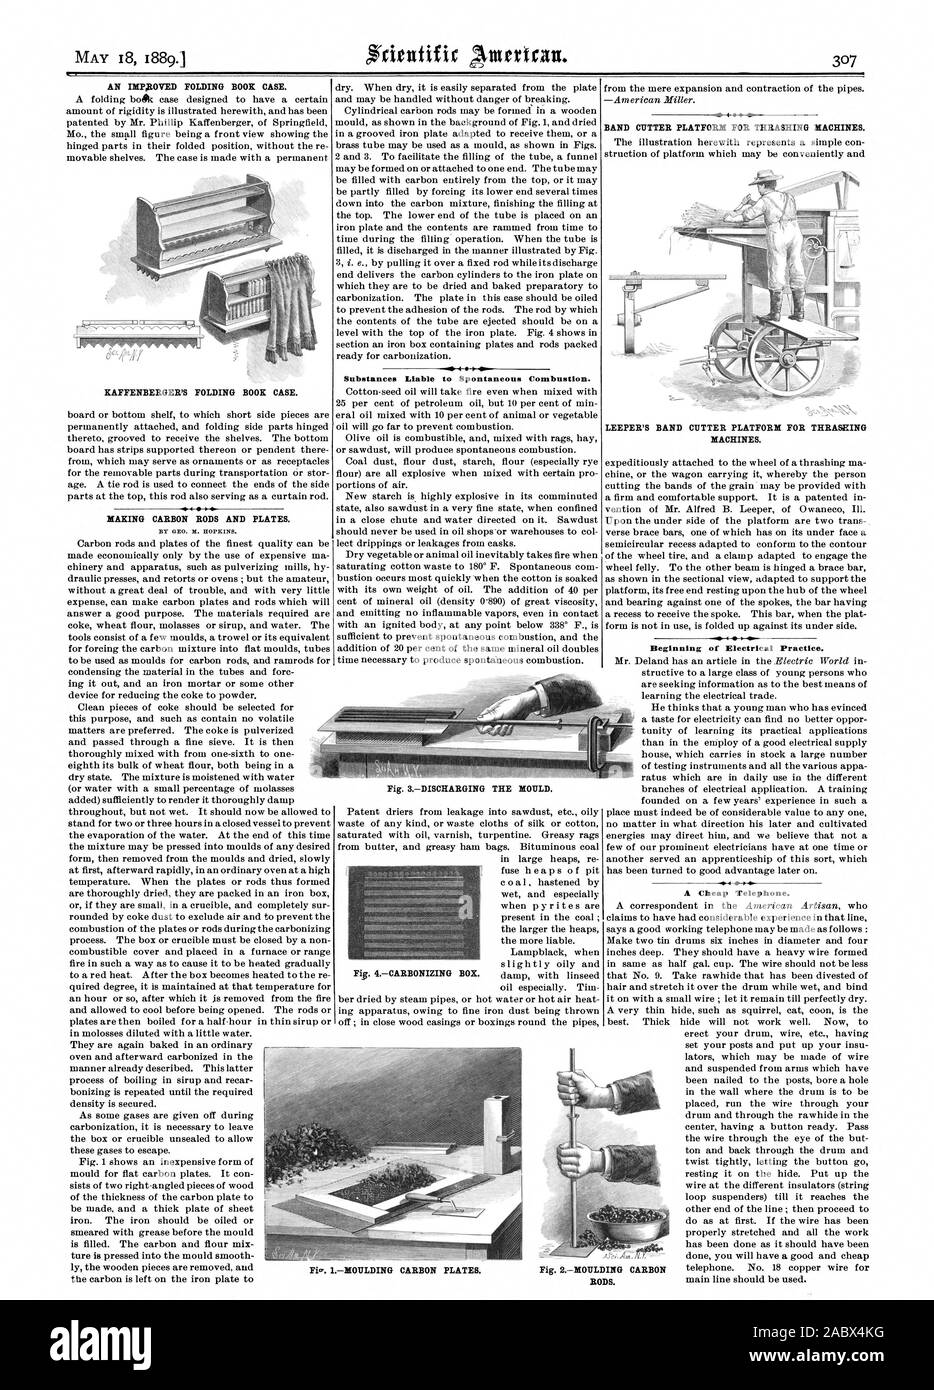 AN IMPHOVED FOLDING BOOK CASE. KAFFENBERGER'S FOLDING BOOK CASE. MAKING CARBON RODS AND PLATES. Substances Liable to Spontaneous Combustion. BAND CUTTER PLATFORM FOR THRASHING MACHINES. LEEPER'S BAND CUTTER PLATFORM FOR THRASHING MACHINES. Beginning of Electrical Practice. A Cheap Telephone. RODS. Fig. IMOULDING CARBON PLATES., scientific american, 1889-05-18 Stock Photo